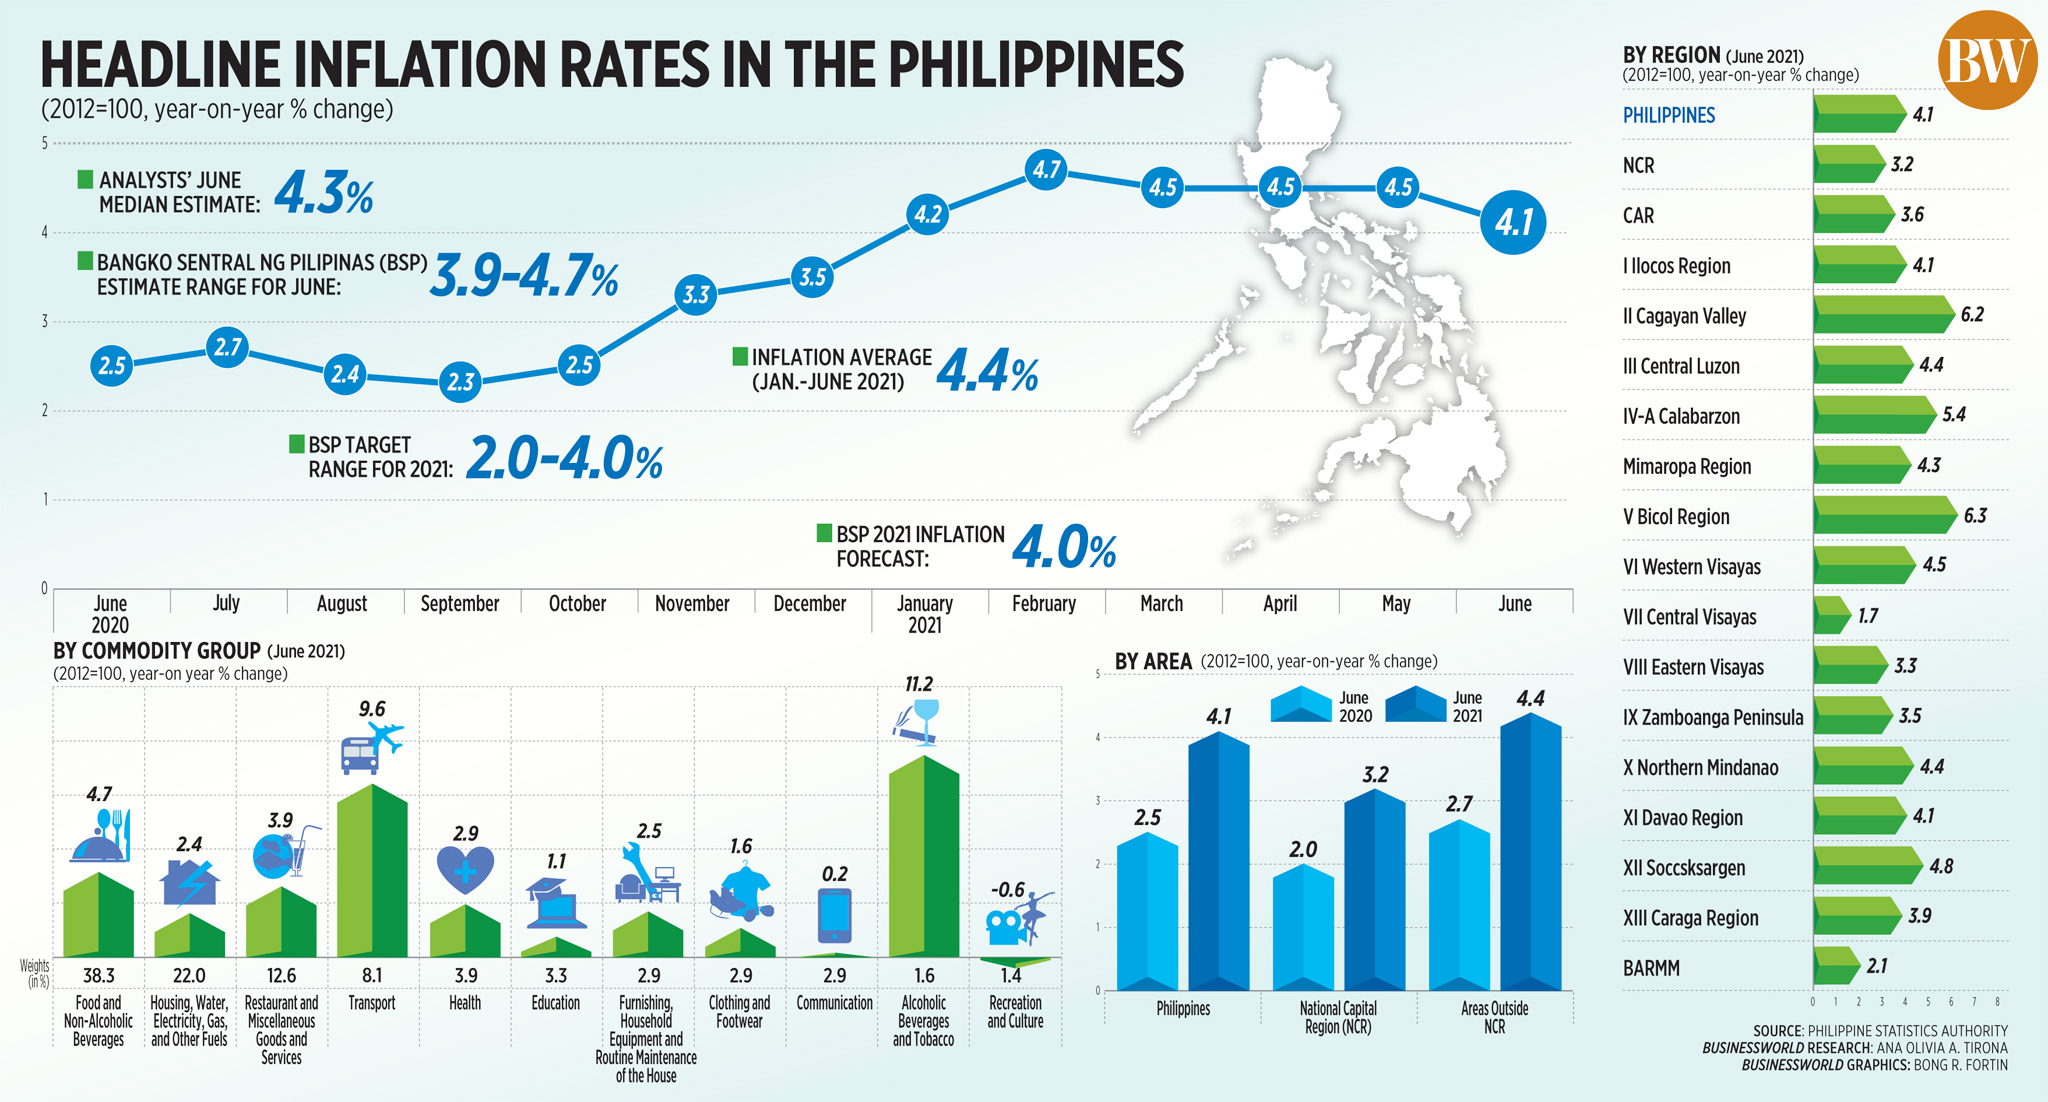 Headline inflation rates in the Philippines (June 2021)